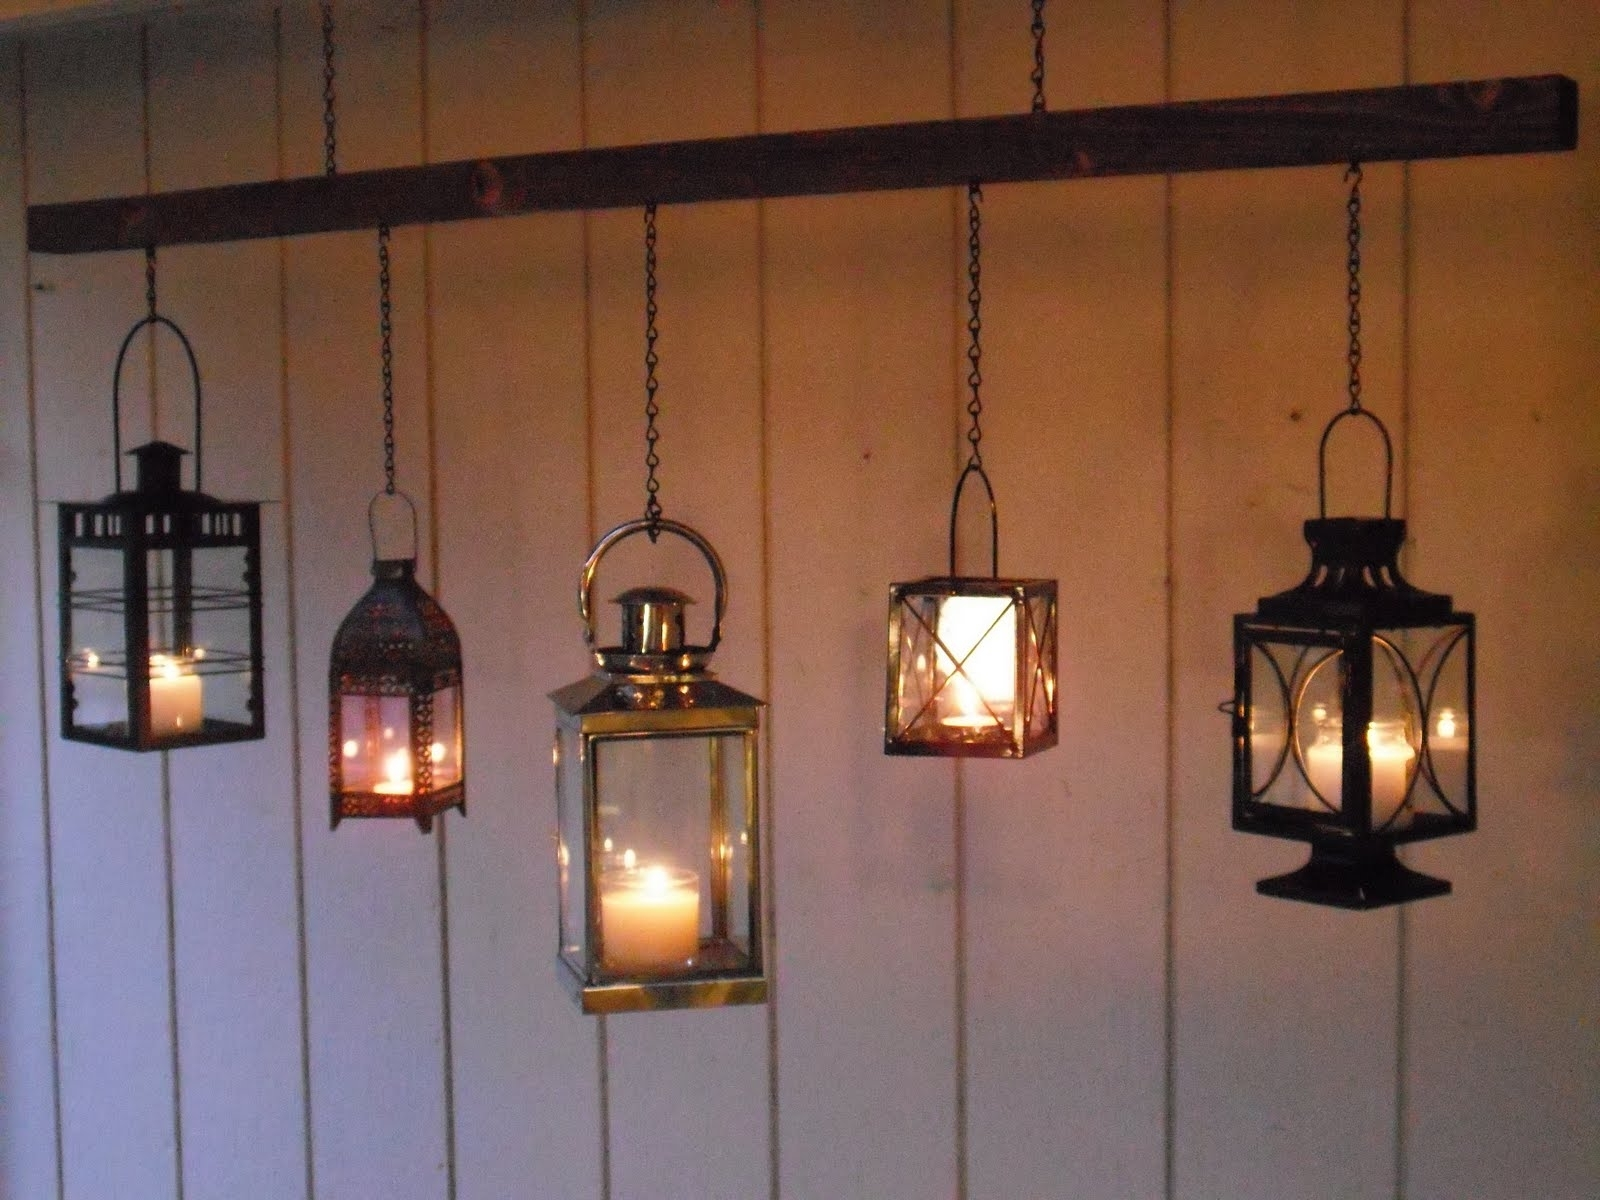 Wedding Decoration Hanging Candle Lanterns – Matt And Jentry Home Design Within Current Outdoor Hanging Lanterns With Candles (View 17 of 20)